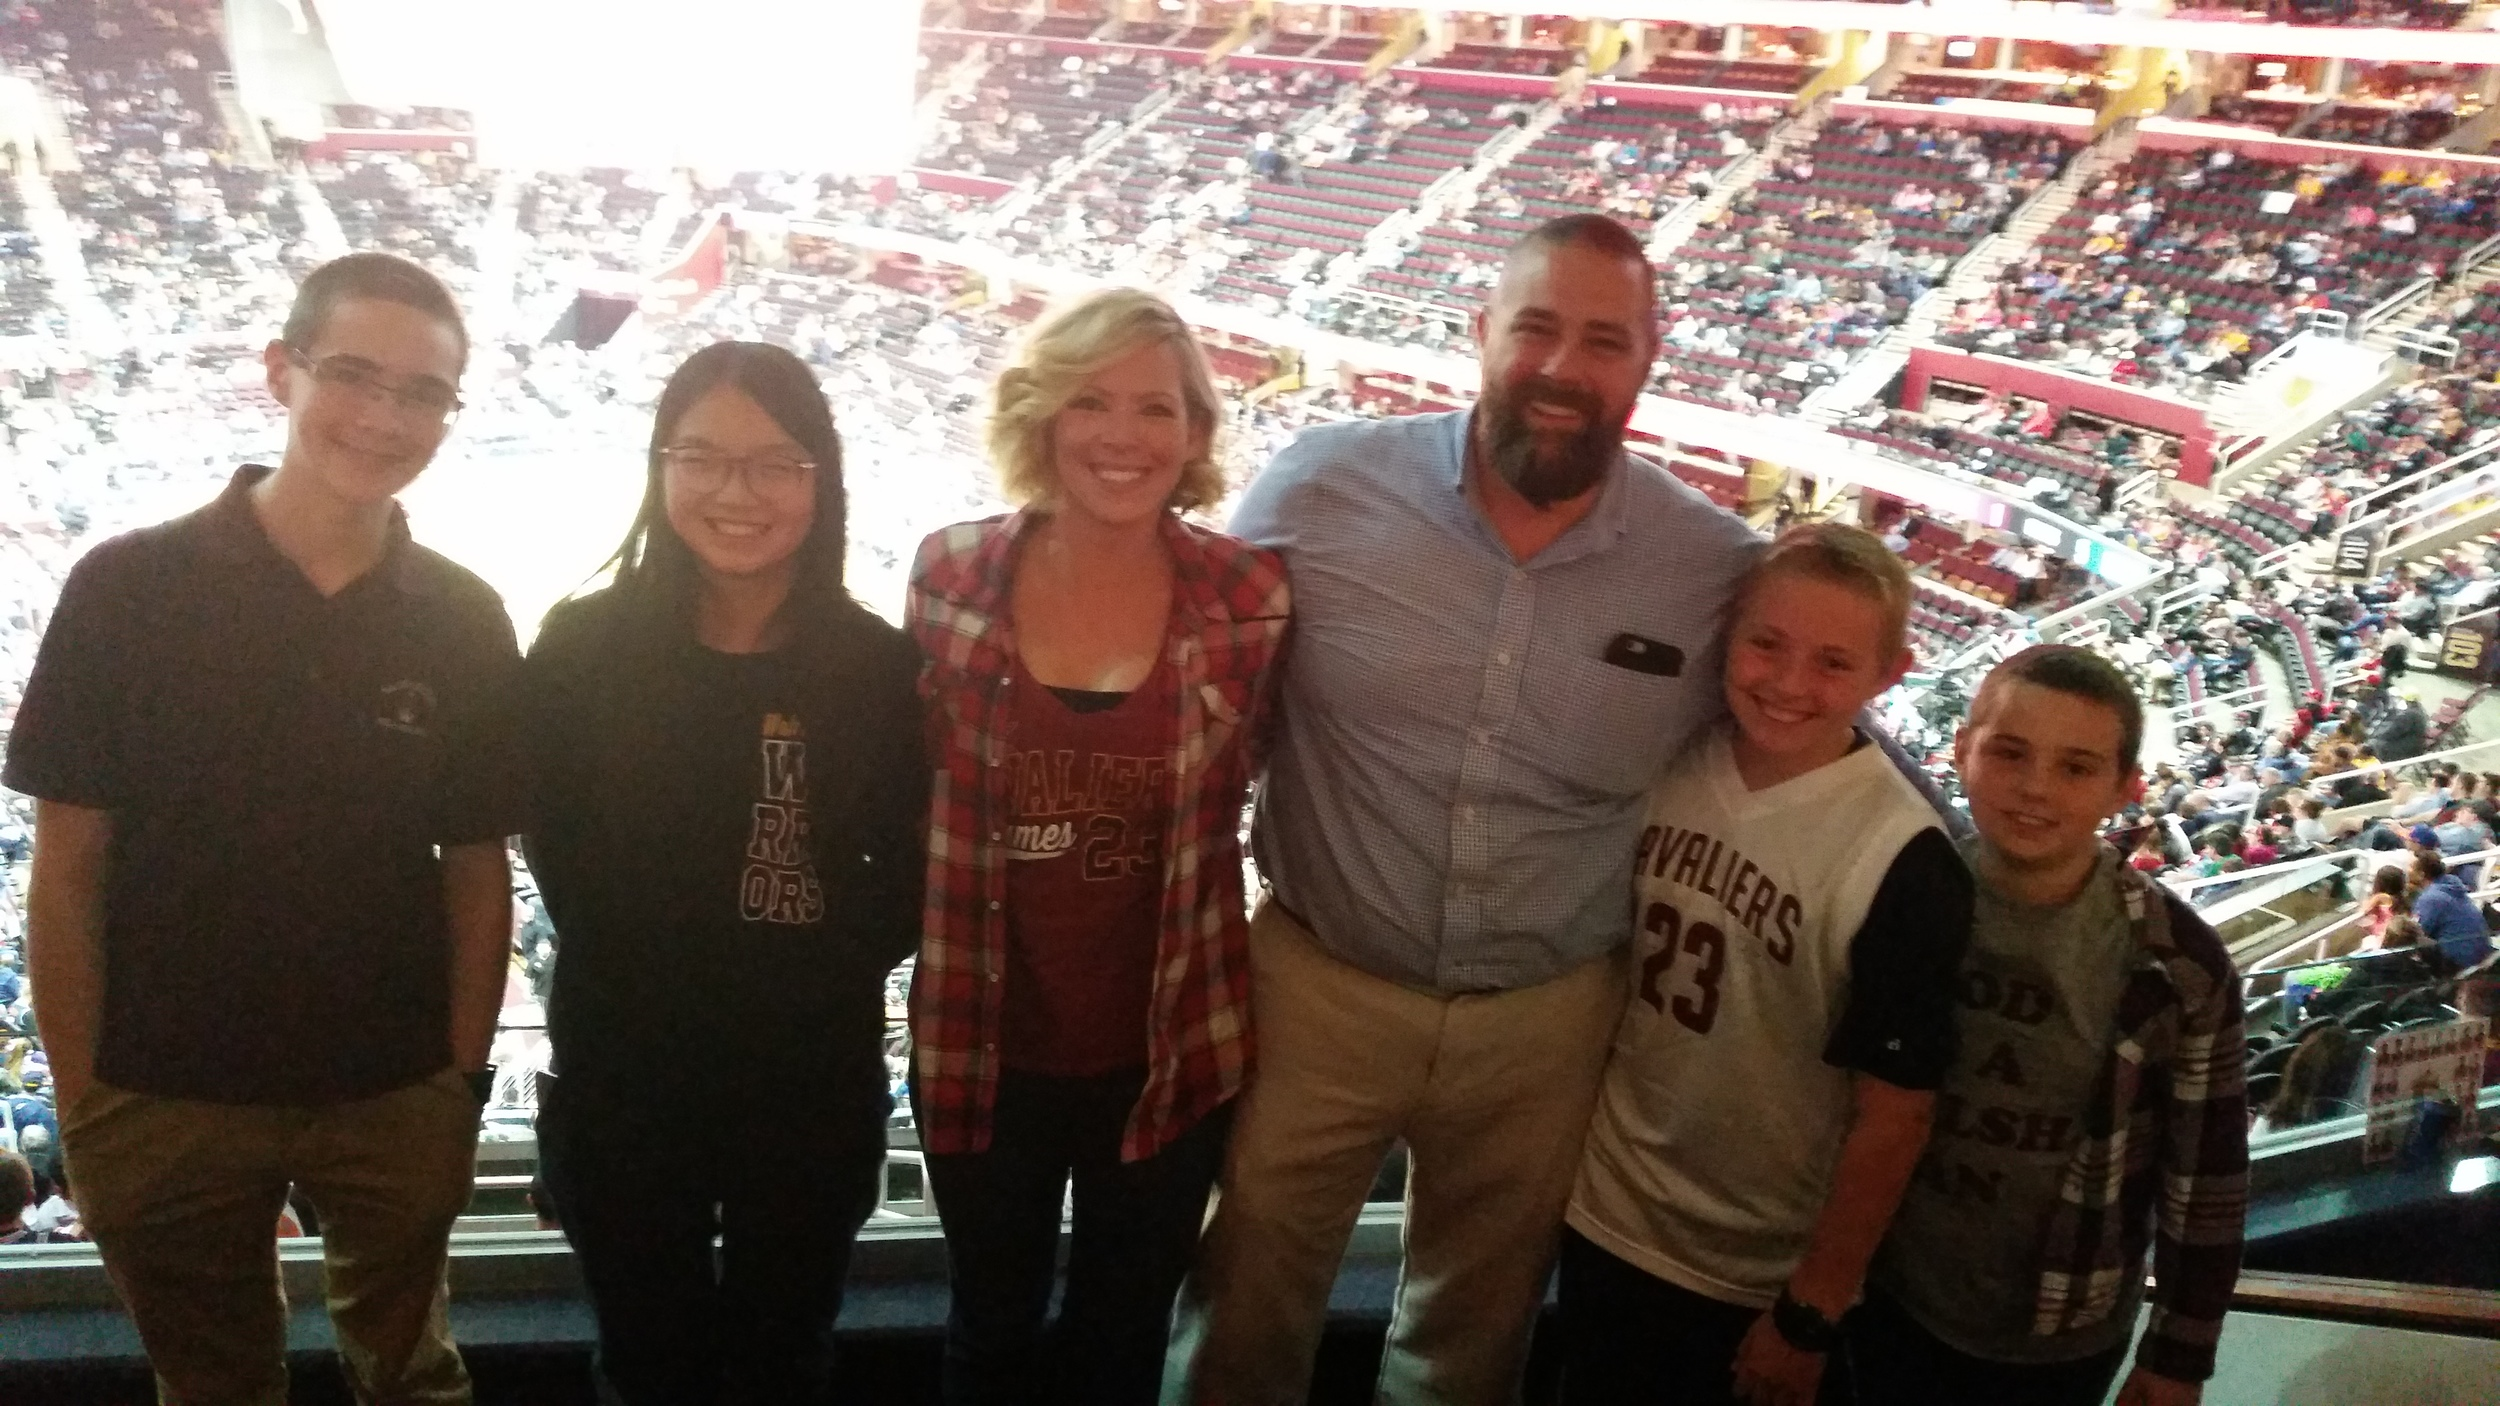 Above is the Waller Family enjoying a suite donated by the Cleveland Cavaliers.